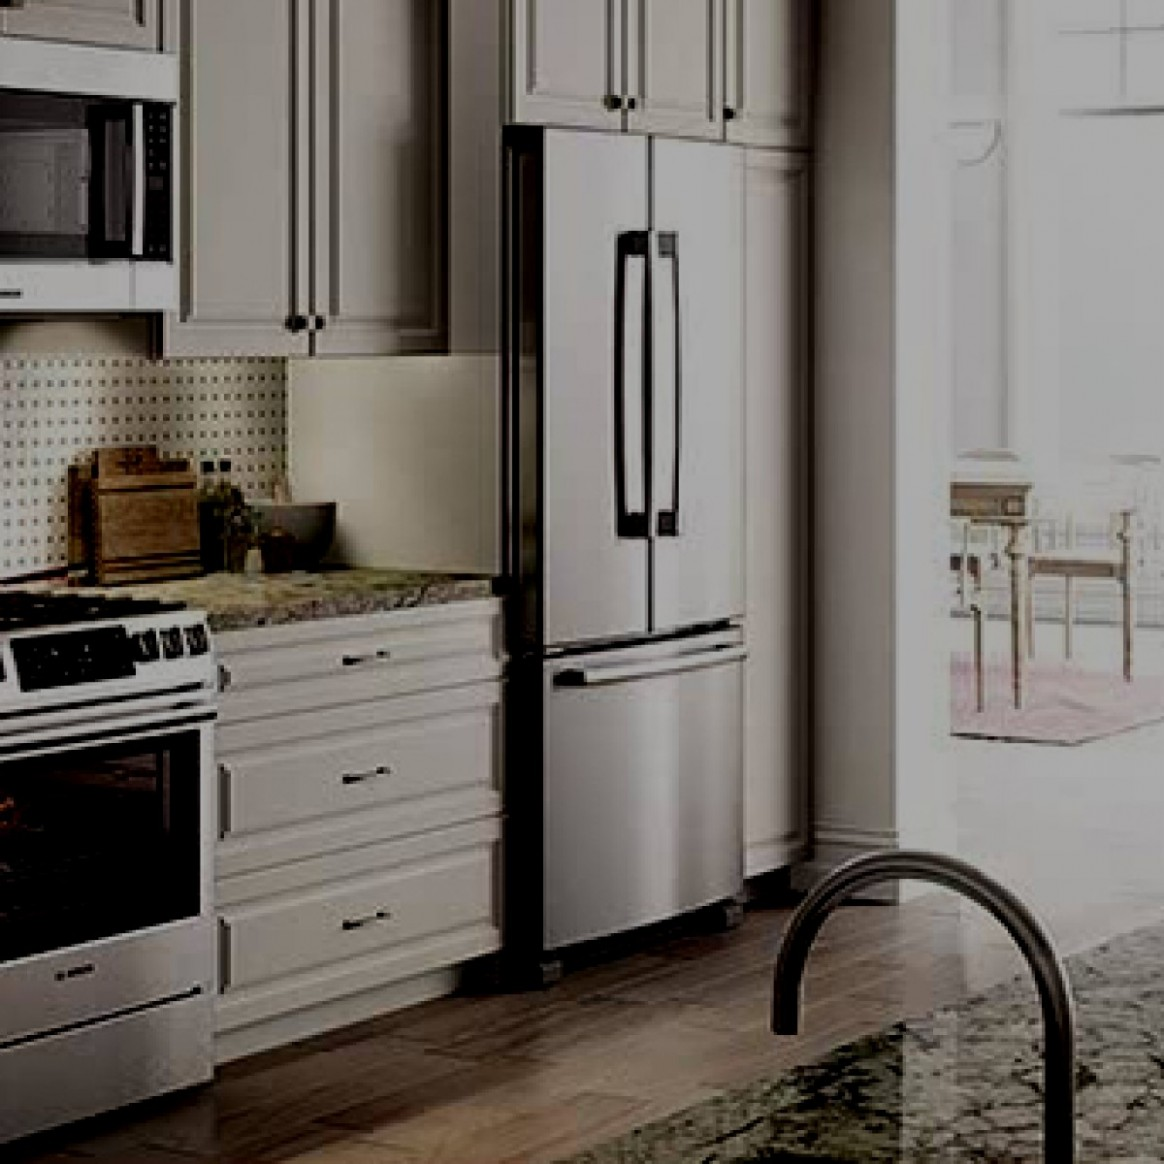 What Is a Counter-Depth Refrigerator? - Kitchen Cabinet Dimensions Refrigerator